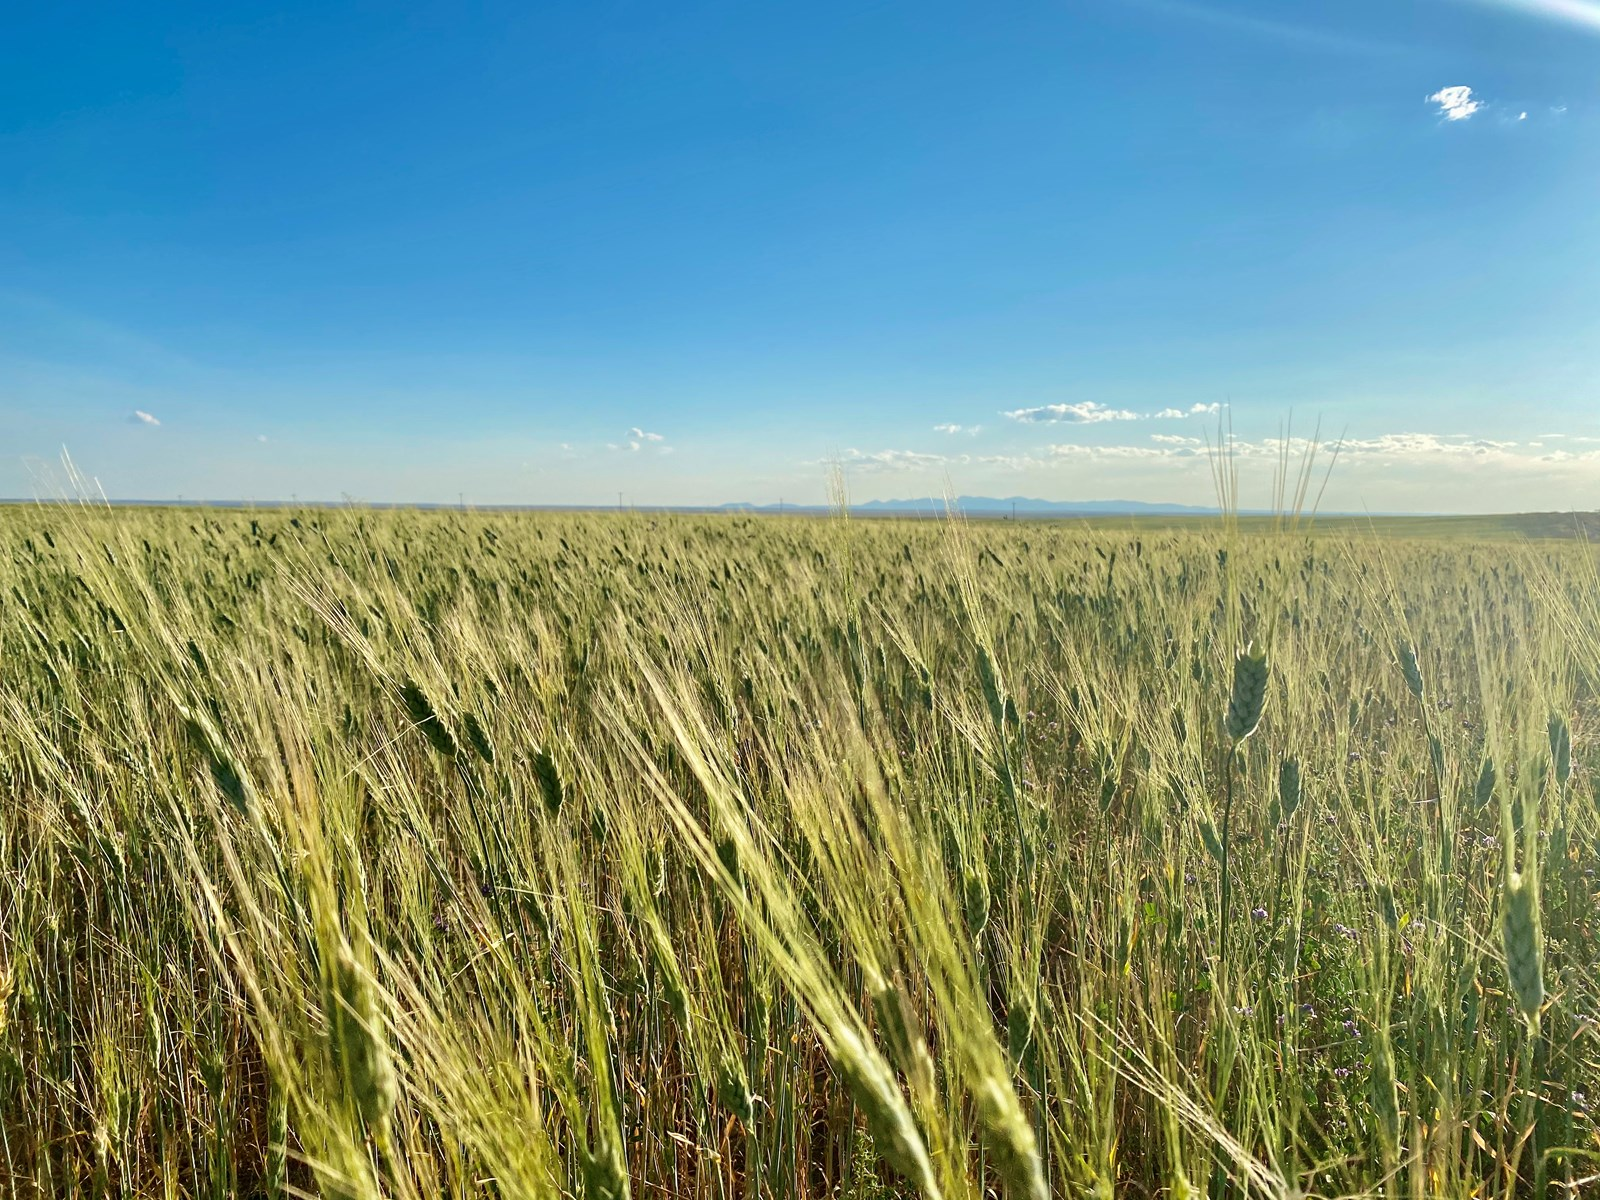 ranches for sale listing image for 1034+/- Acres Organic Farm Ground South Phillips County